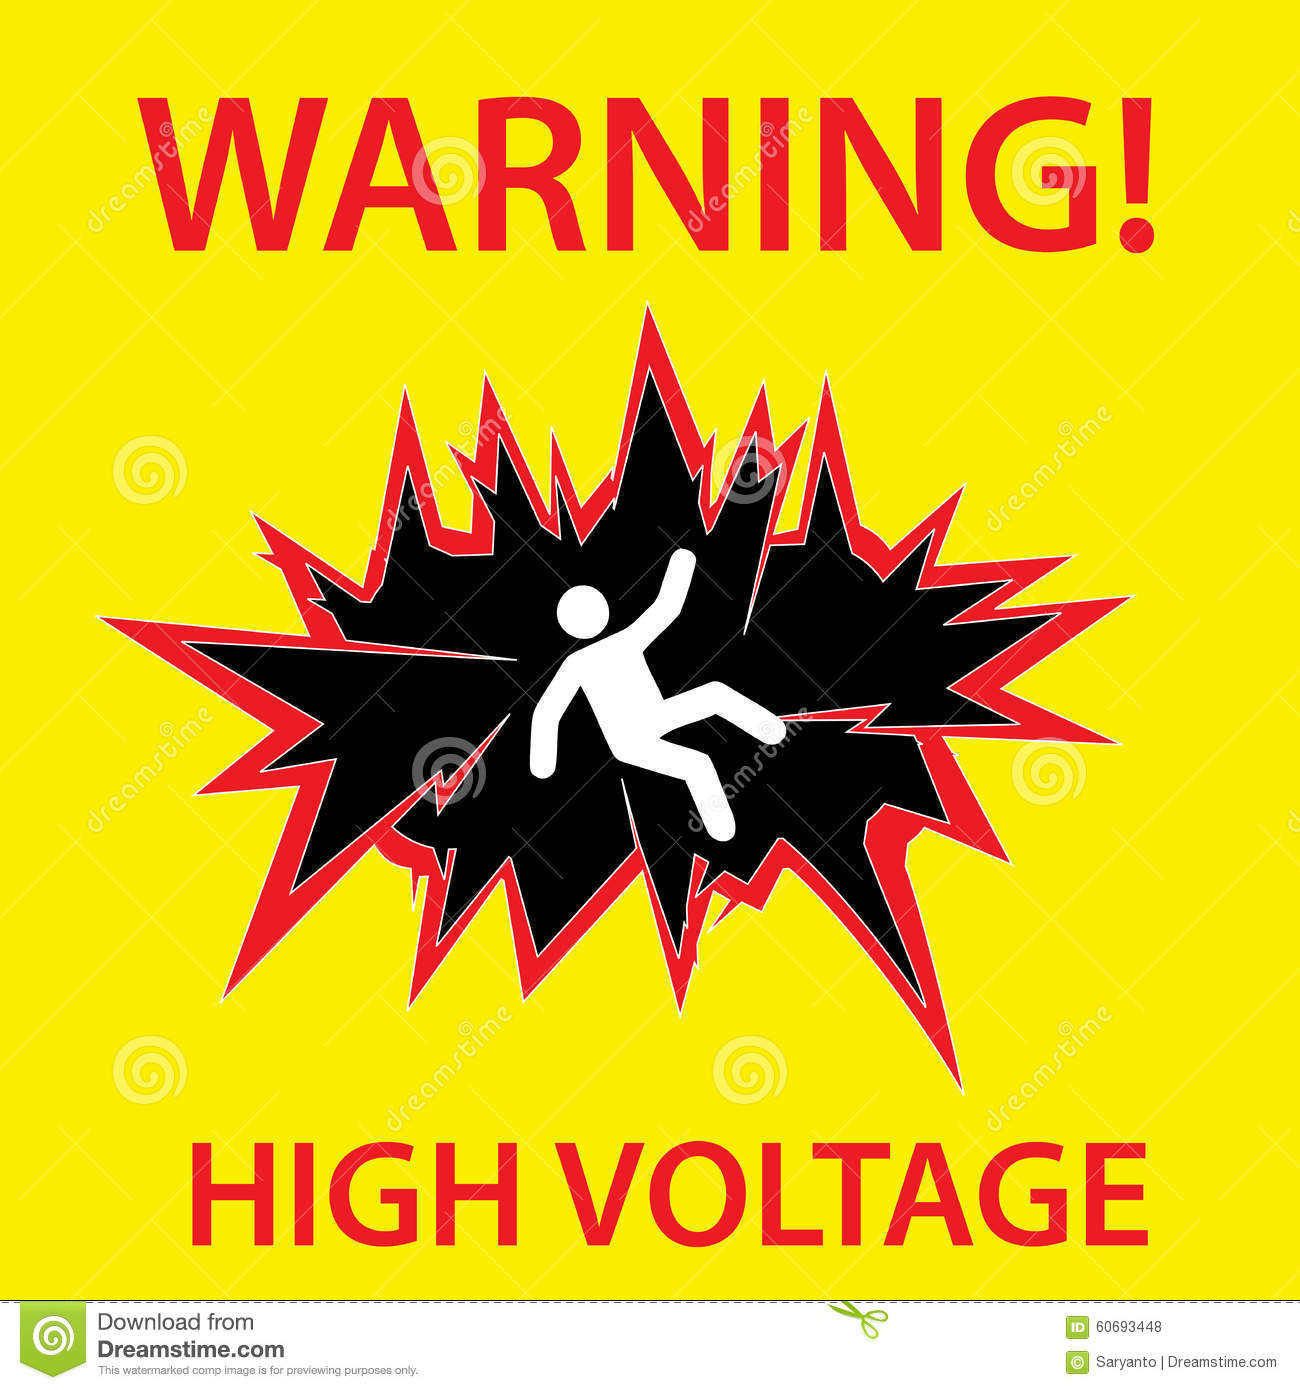 Magnificent How To Wire Ssr Tiny Ibanez Pickup Wiring Round Ibanez Rg Wiring Fender S1 Switch Wiring Diagram Youthful Coil Tap Wiring BrightStrat Wiring Bridge Tone High Voltage Warning Symbol Stock Photo   Image: 60693448